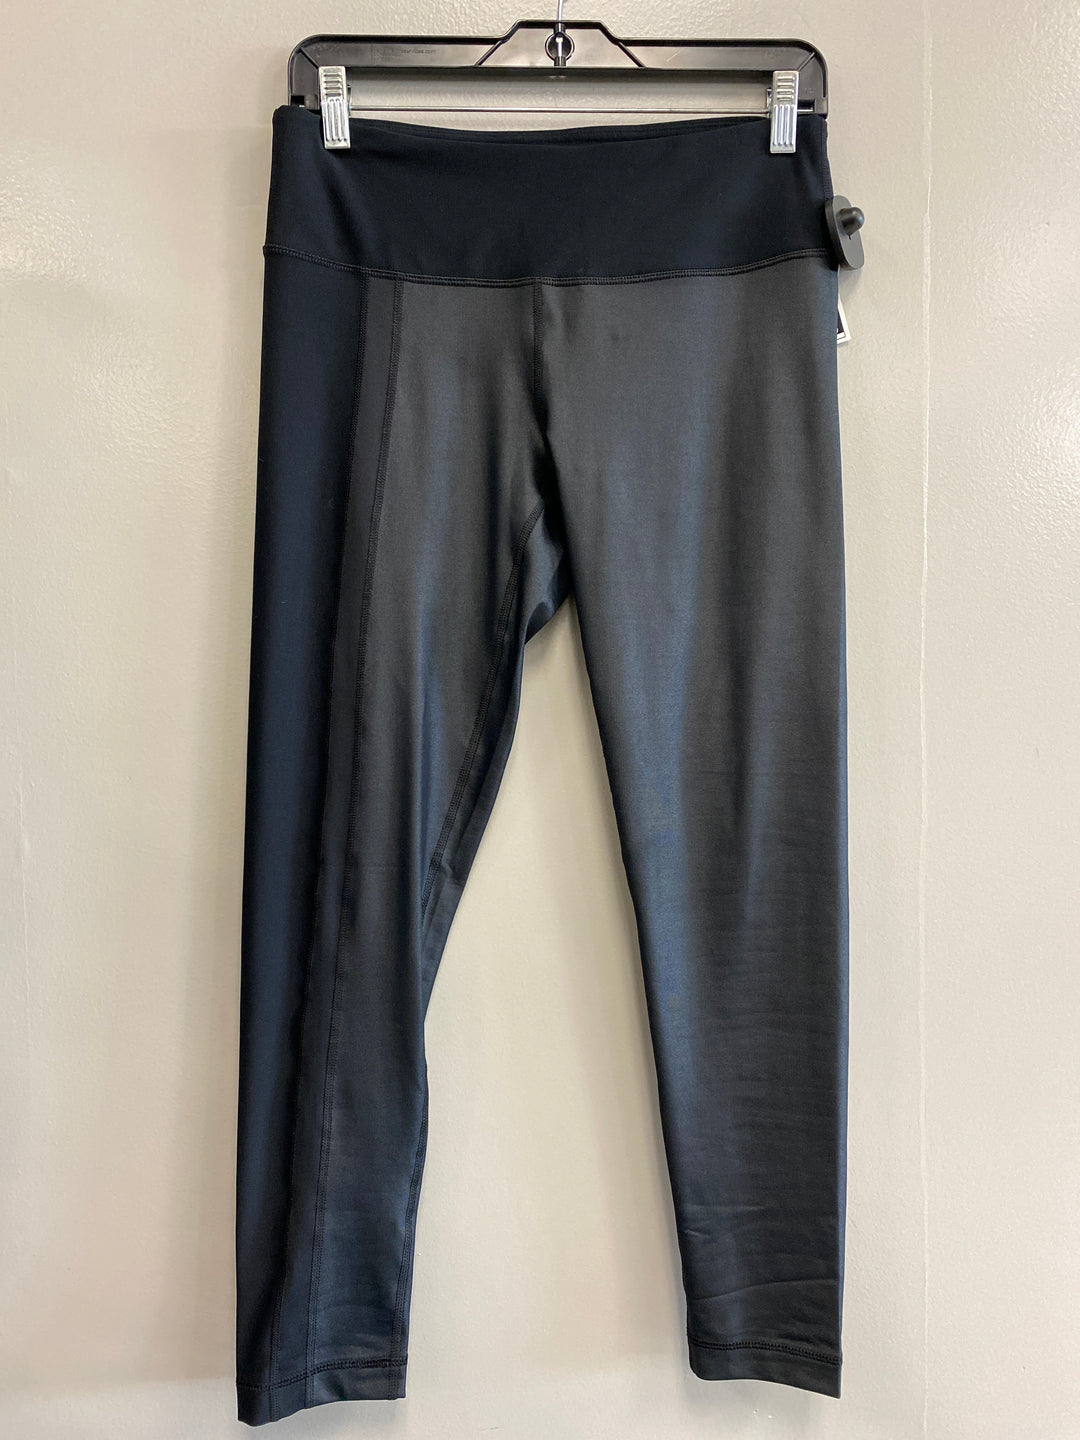 Primary Photo - BRAND: 90 DEGREES BY REFLEX <BR>STYLE: ATHLETIC CAPRIS <BR>COLOR: BLACK <BR>SIZE: M <BR>SKU: 313-31344-14503